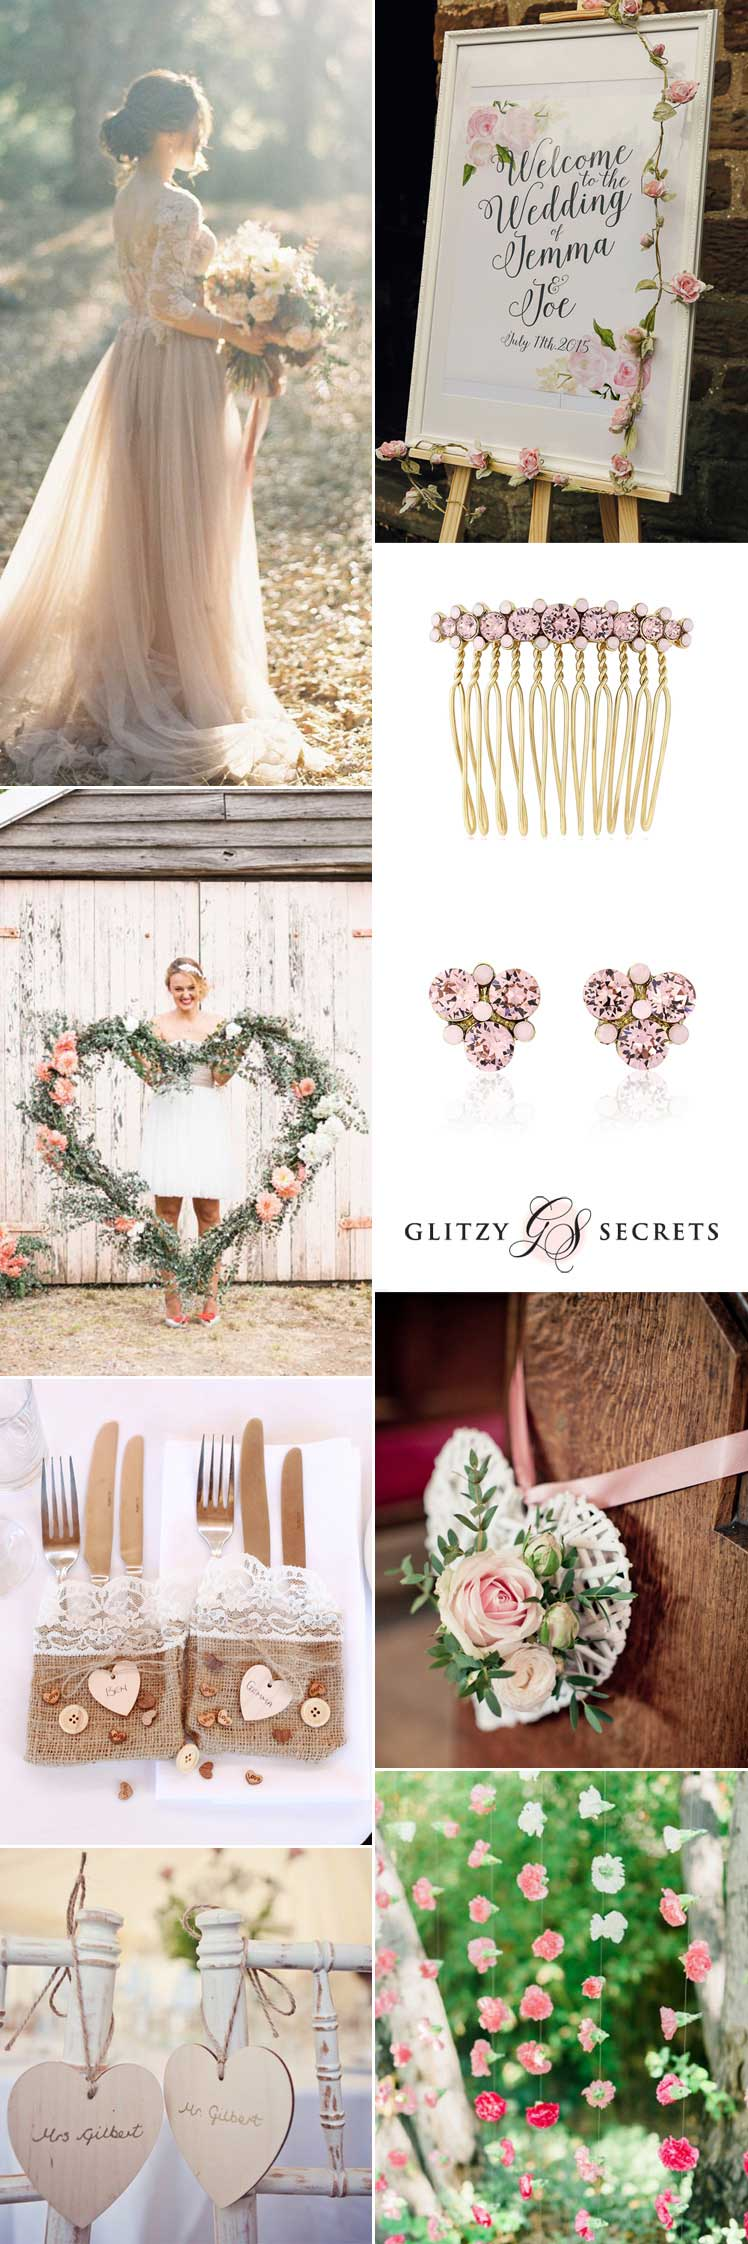 Shabby chic valentine wedding ideas